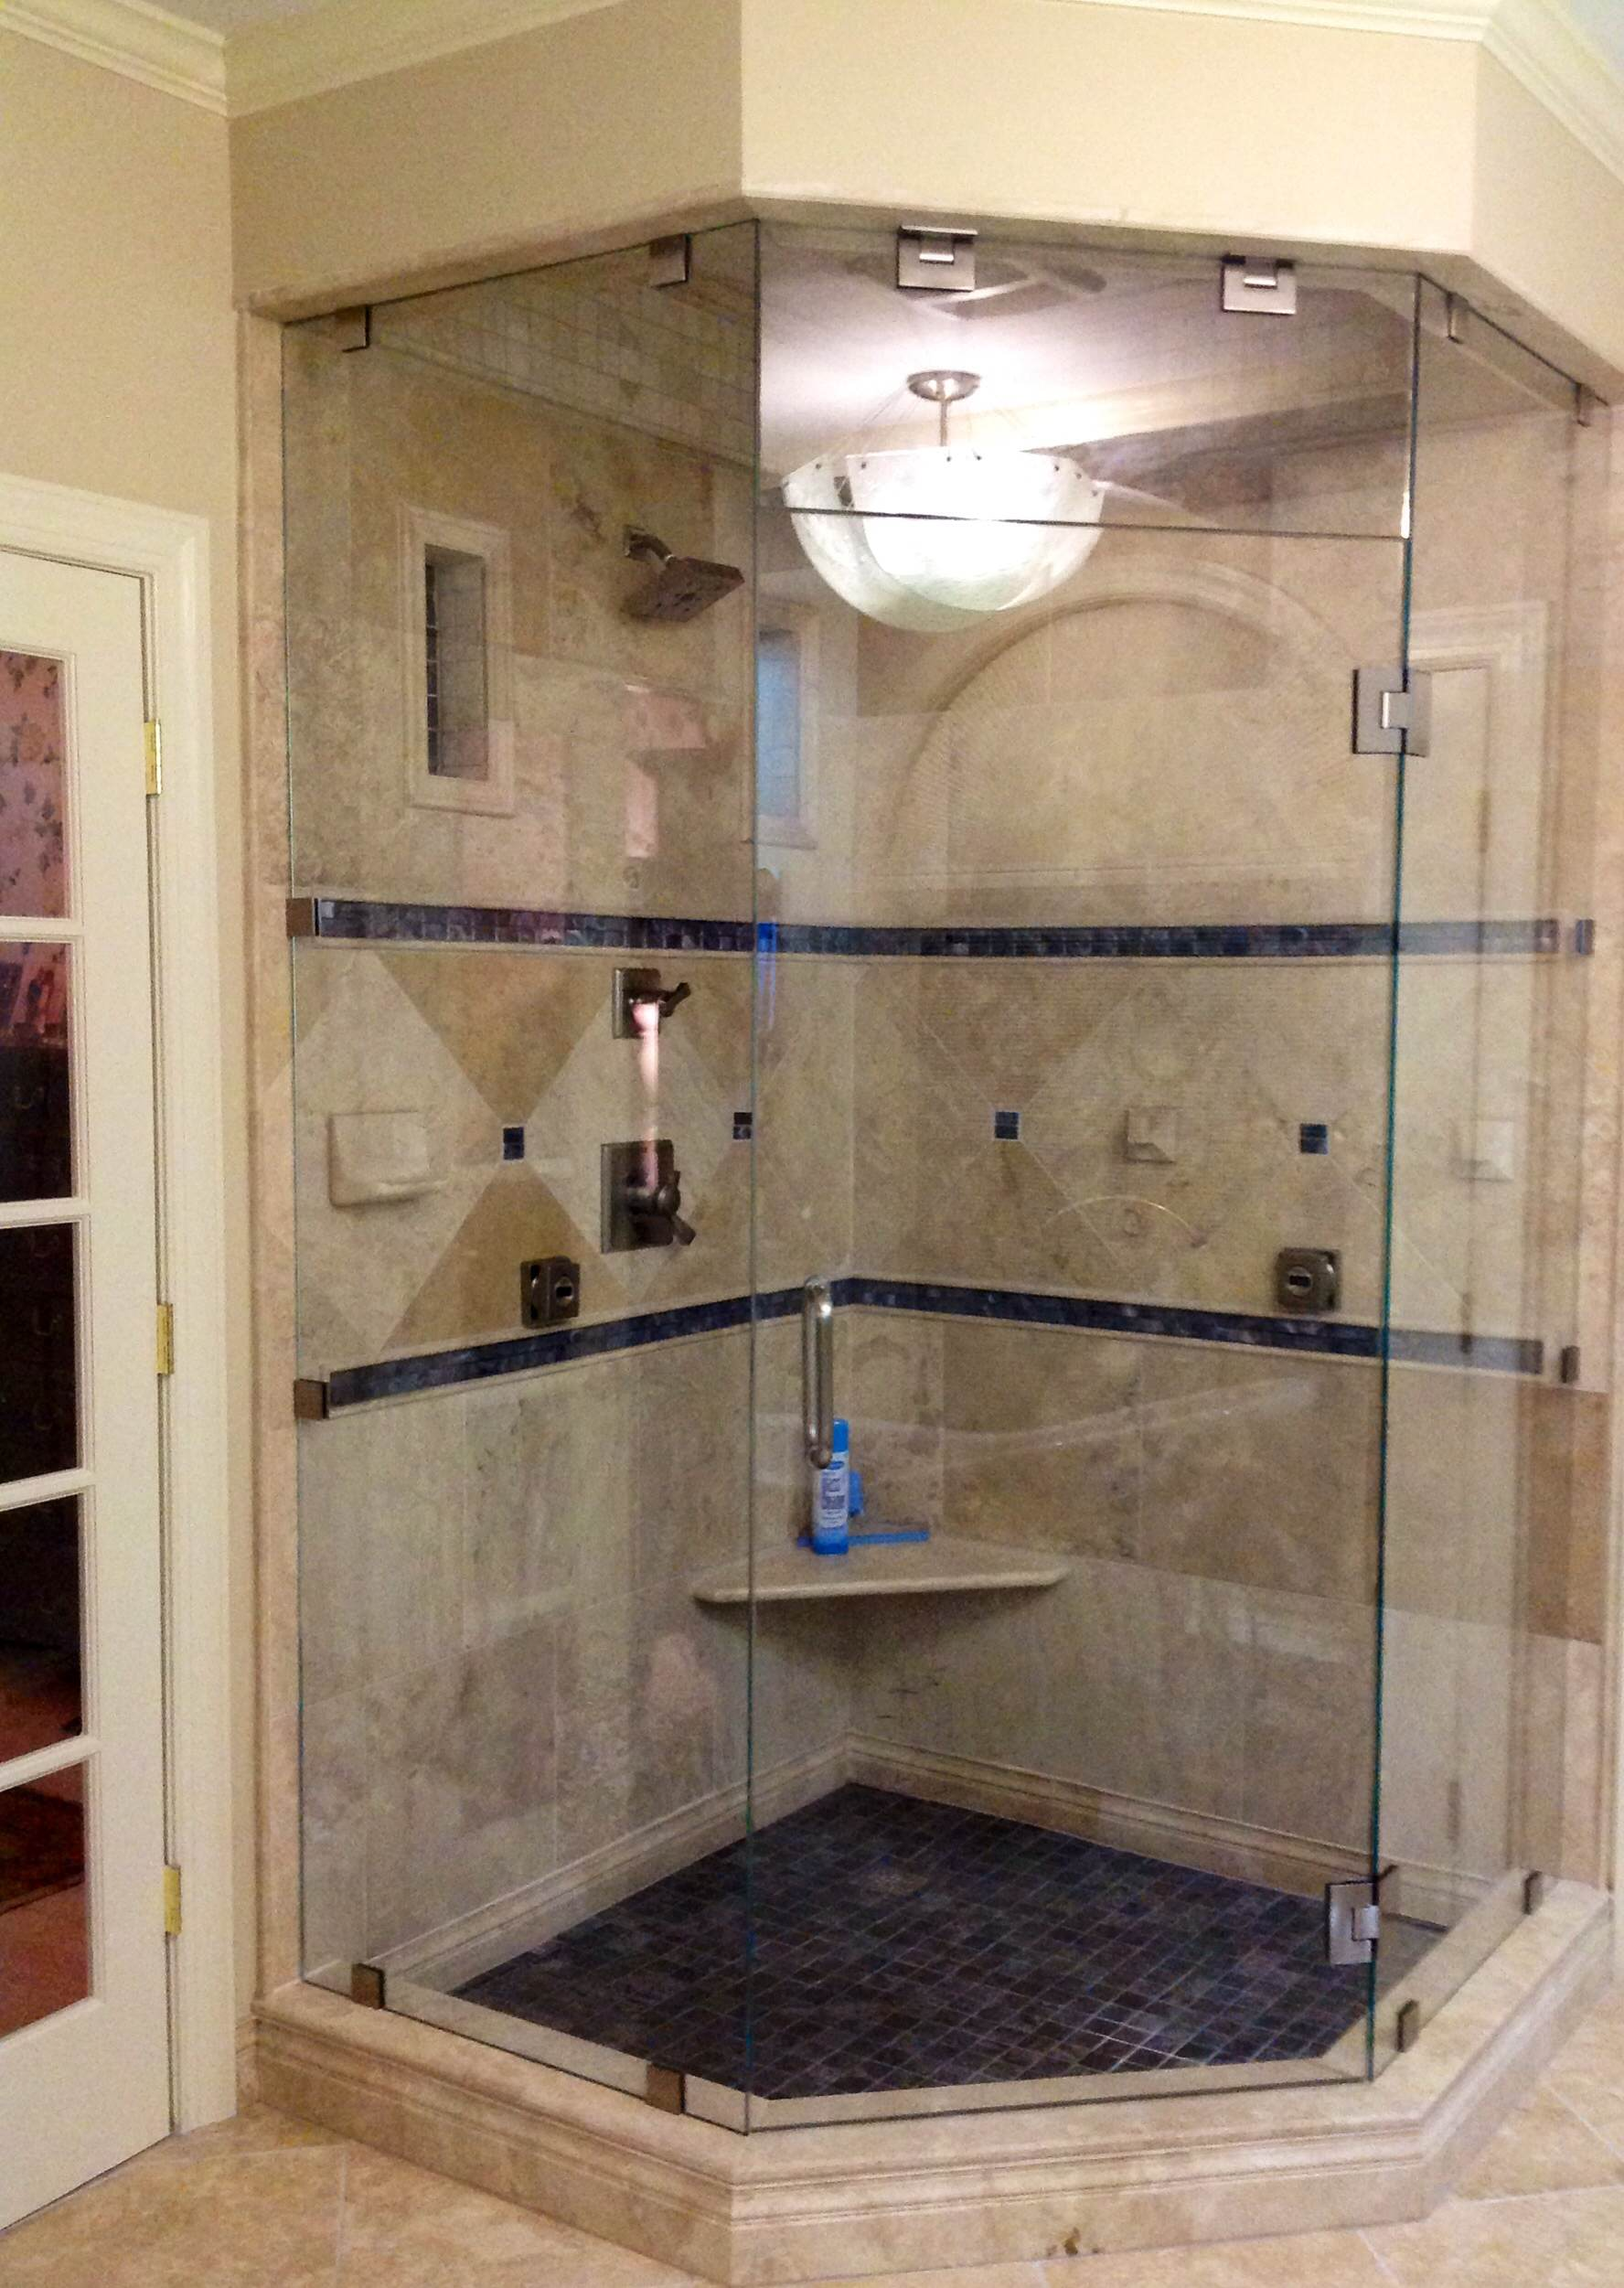 Care & Cleaning For Your Glass Shower Enclosure – Mia Shower Doors